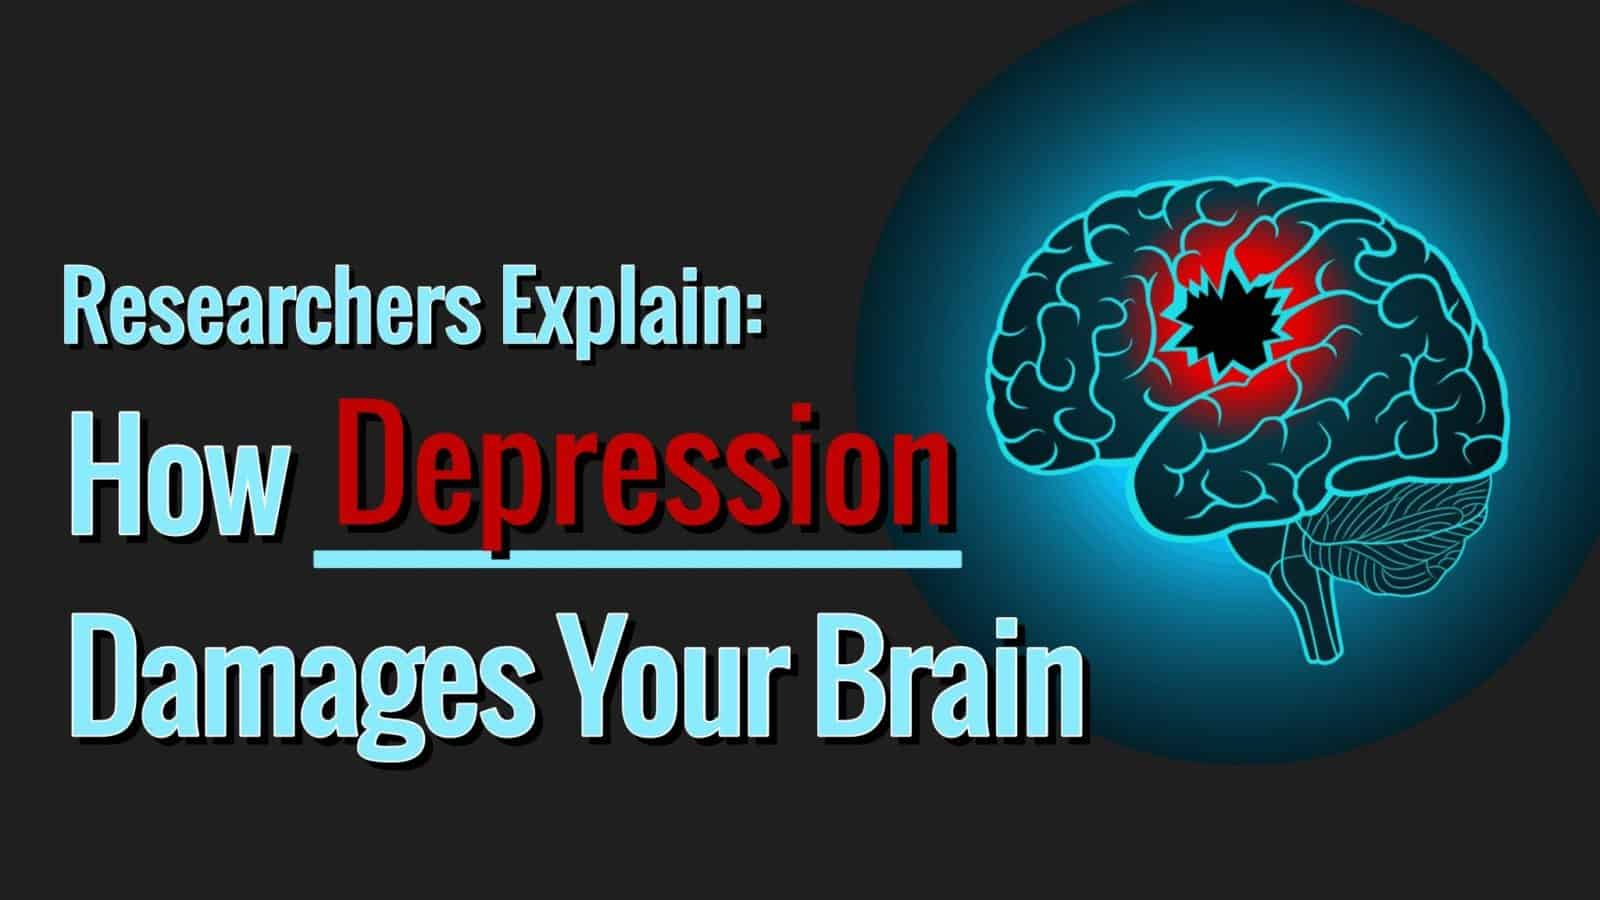 Researchers explain how depression damages parts of your brain ccuart